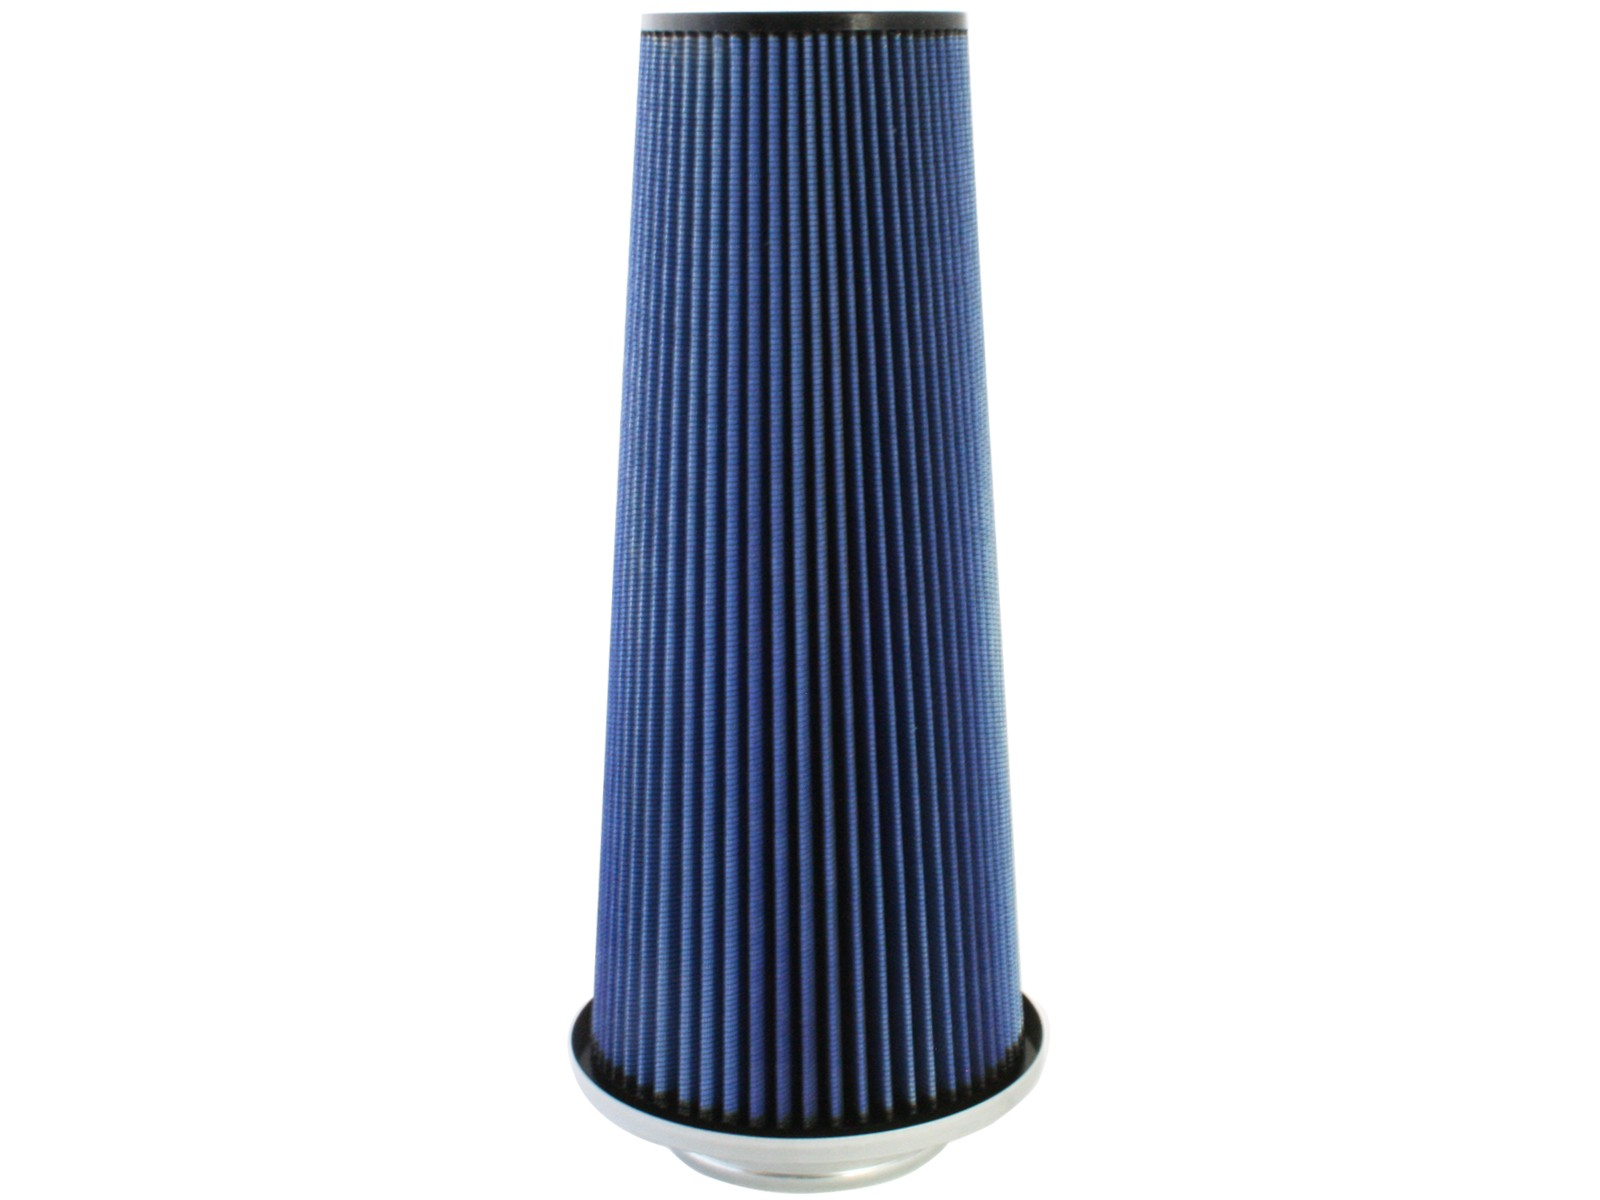 ProHDuty Pro 5R Air Filter for 70-50104